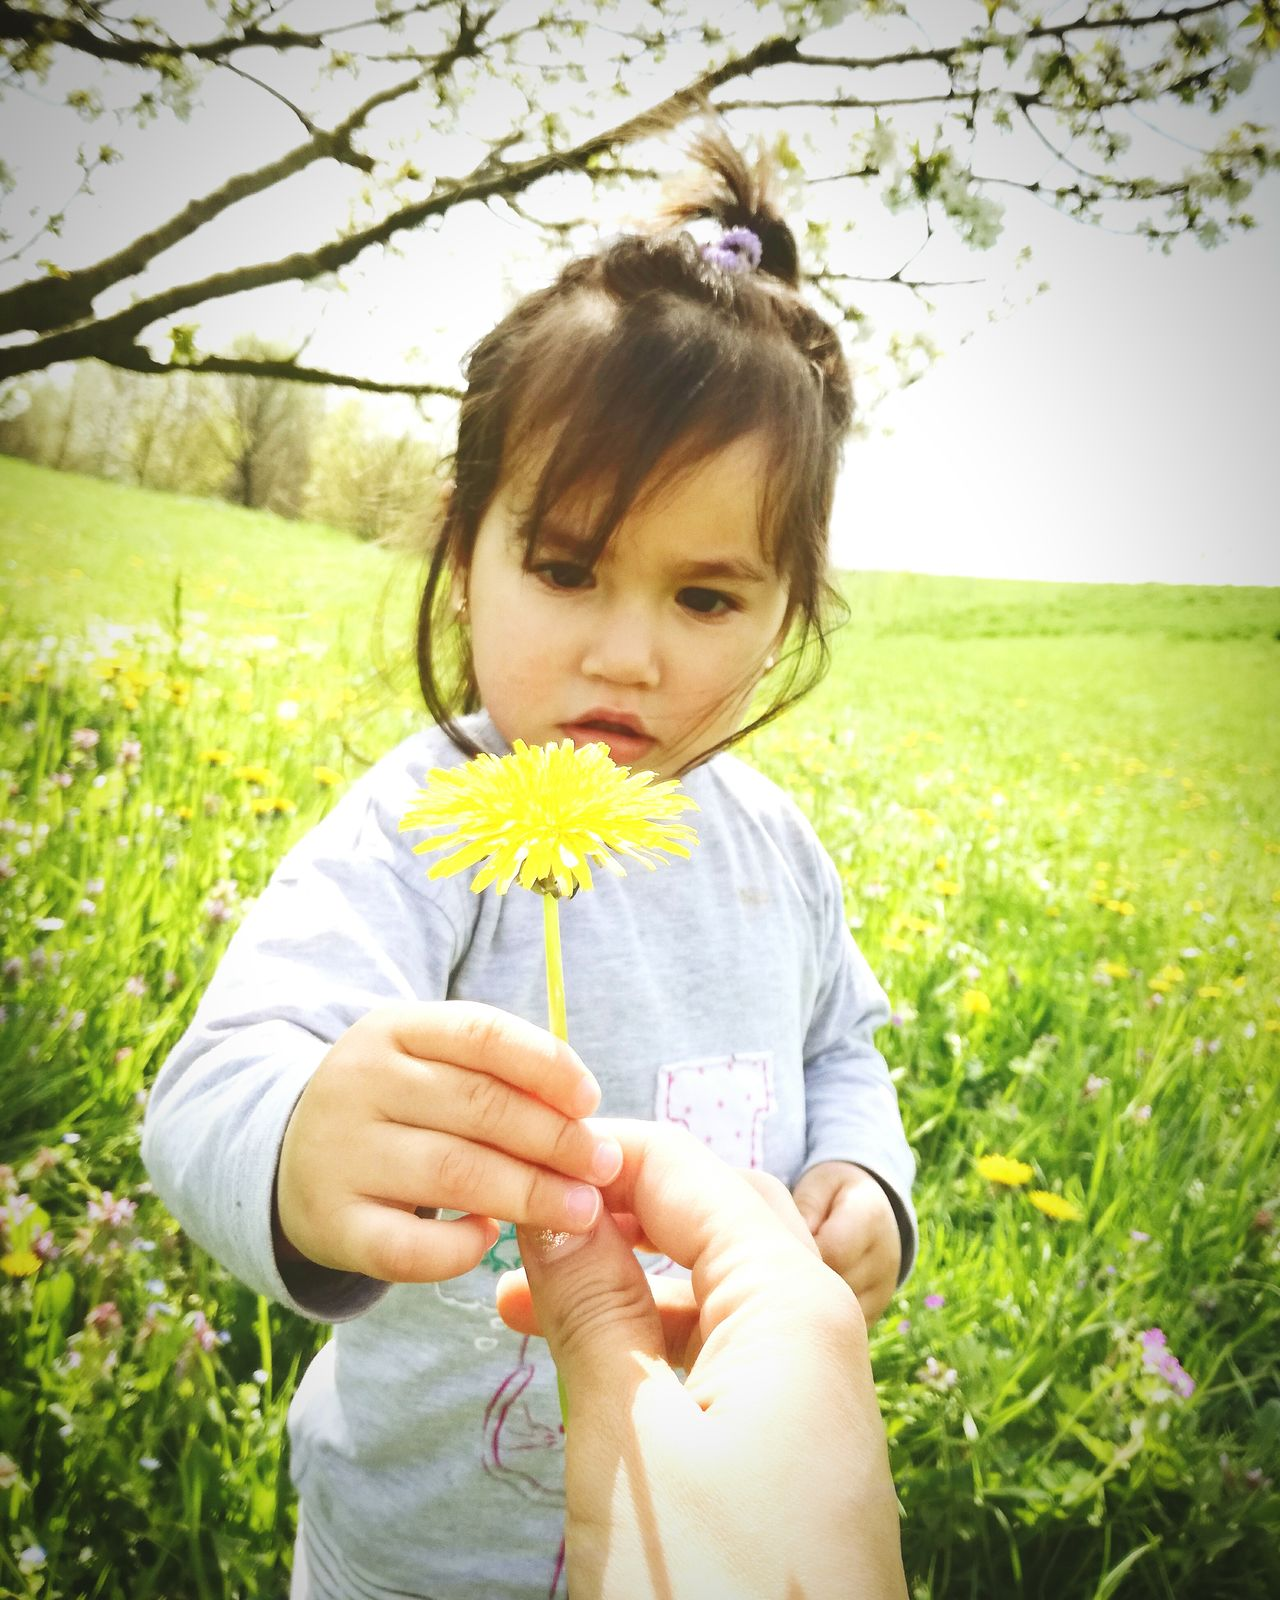 Greenworld Green Nature Nature Photography Child Nature Flower Plant Yellow One Girl Only People Portrait Childhood Children Only Outdoors Italygram Italy Photos Natureporn Nature Beauty Italiangirl Nature_shooters Nature In The City Nature Colors Tree Beautiful People Moments Of My Life @ 私の人生の瞬間。 The Portraitist - 2017 EyeEm Awards